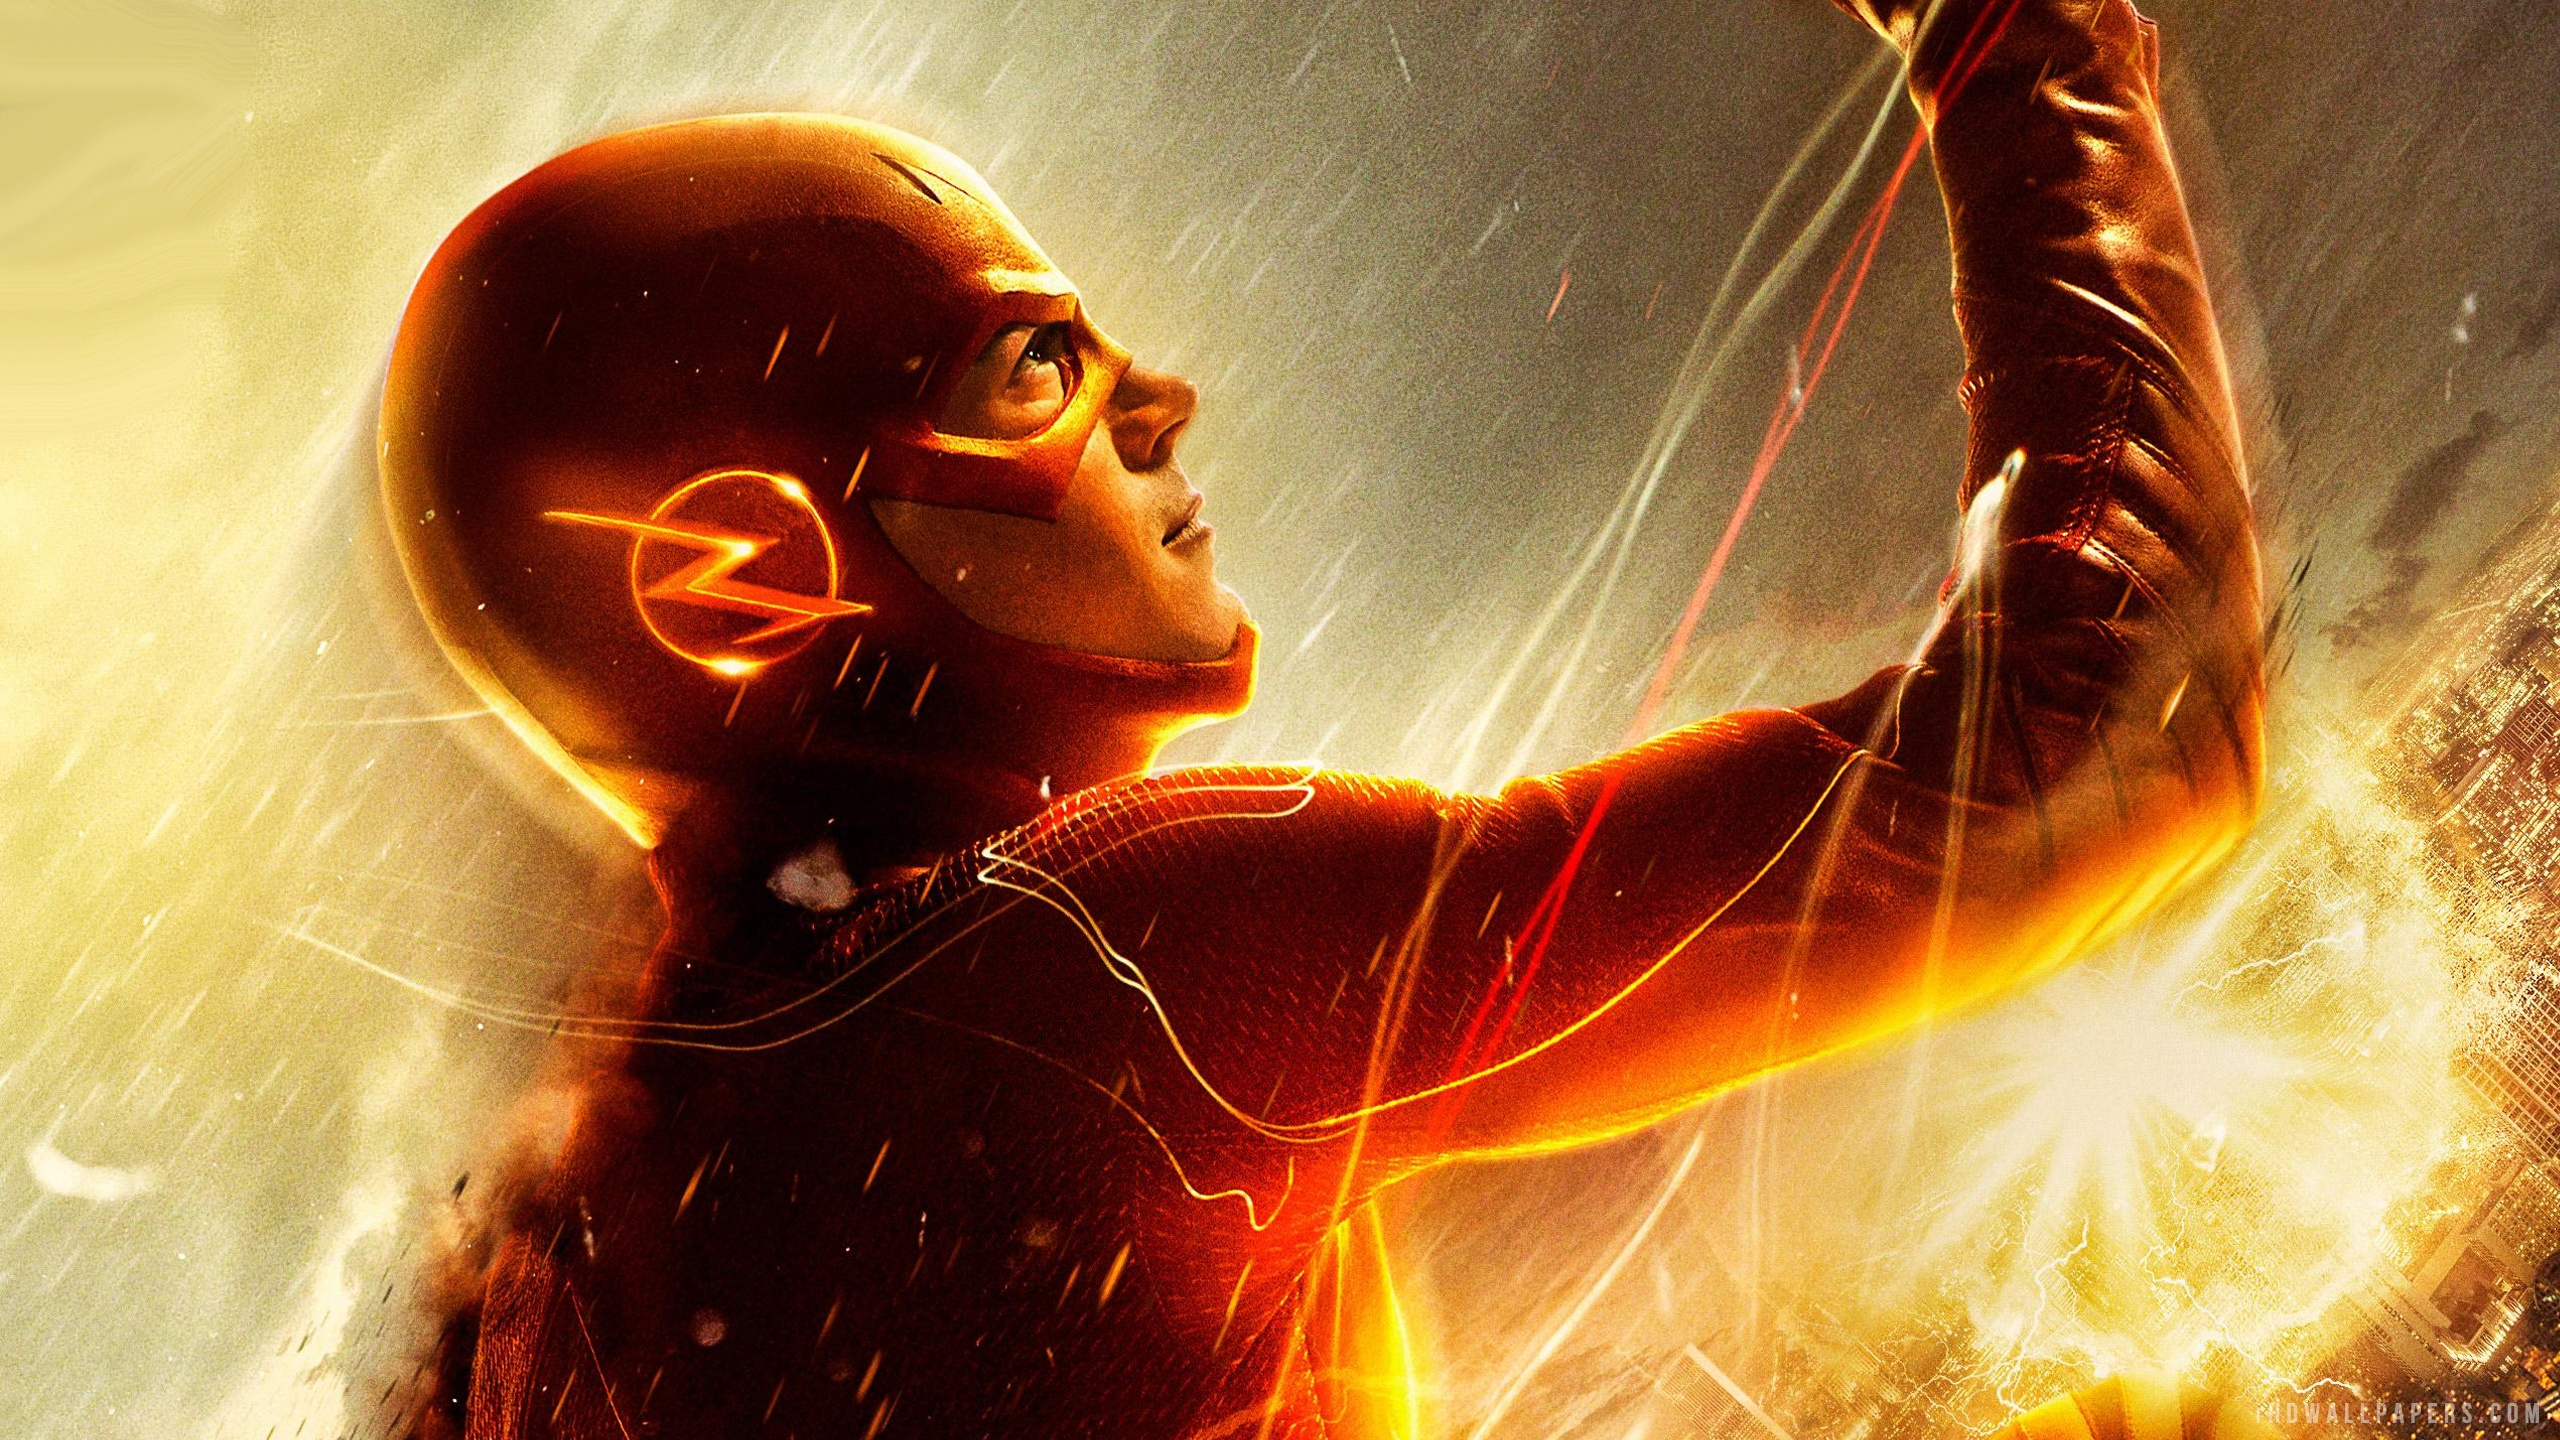 The Flash HD Wallpaper   iHD Wallpapers 2560x1440